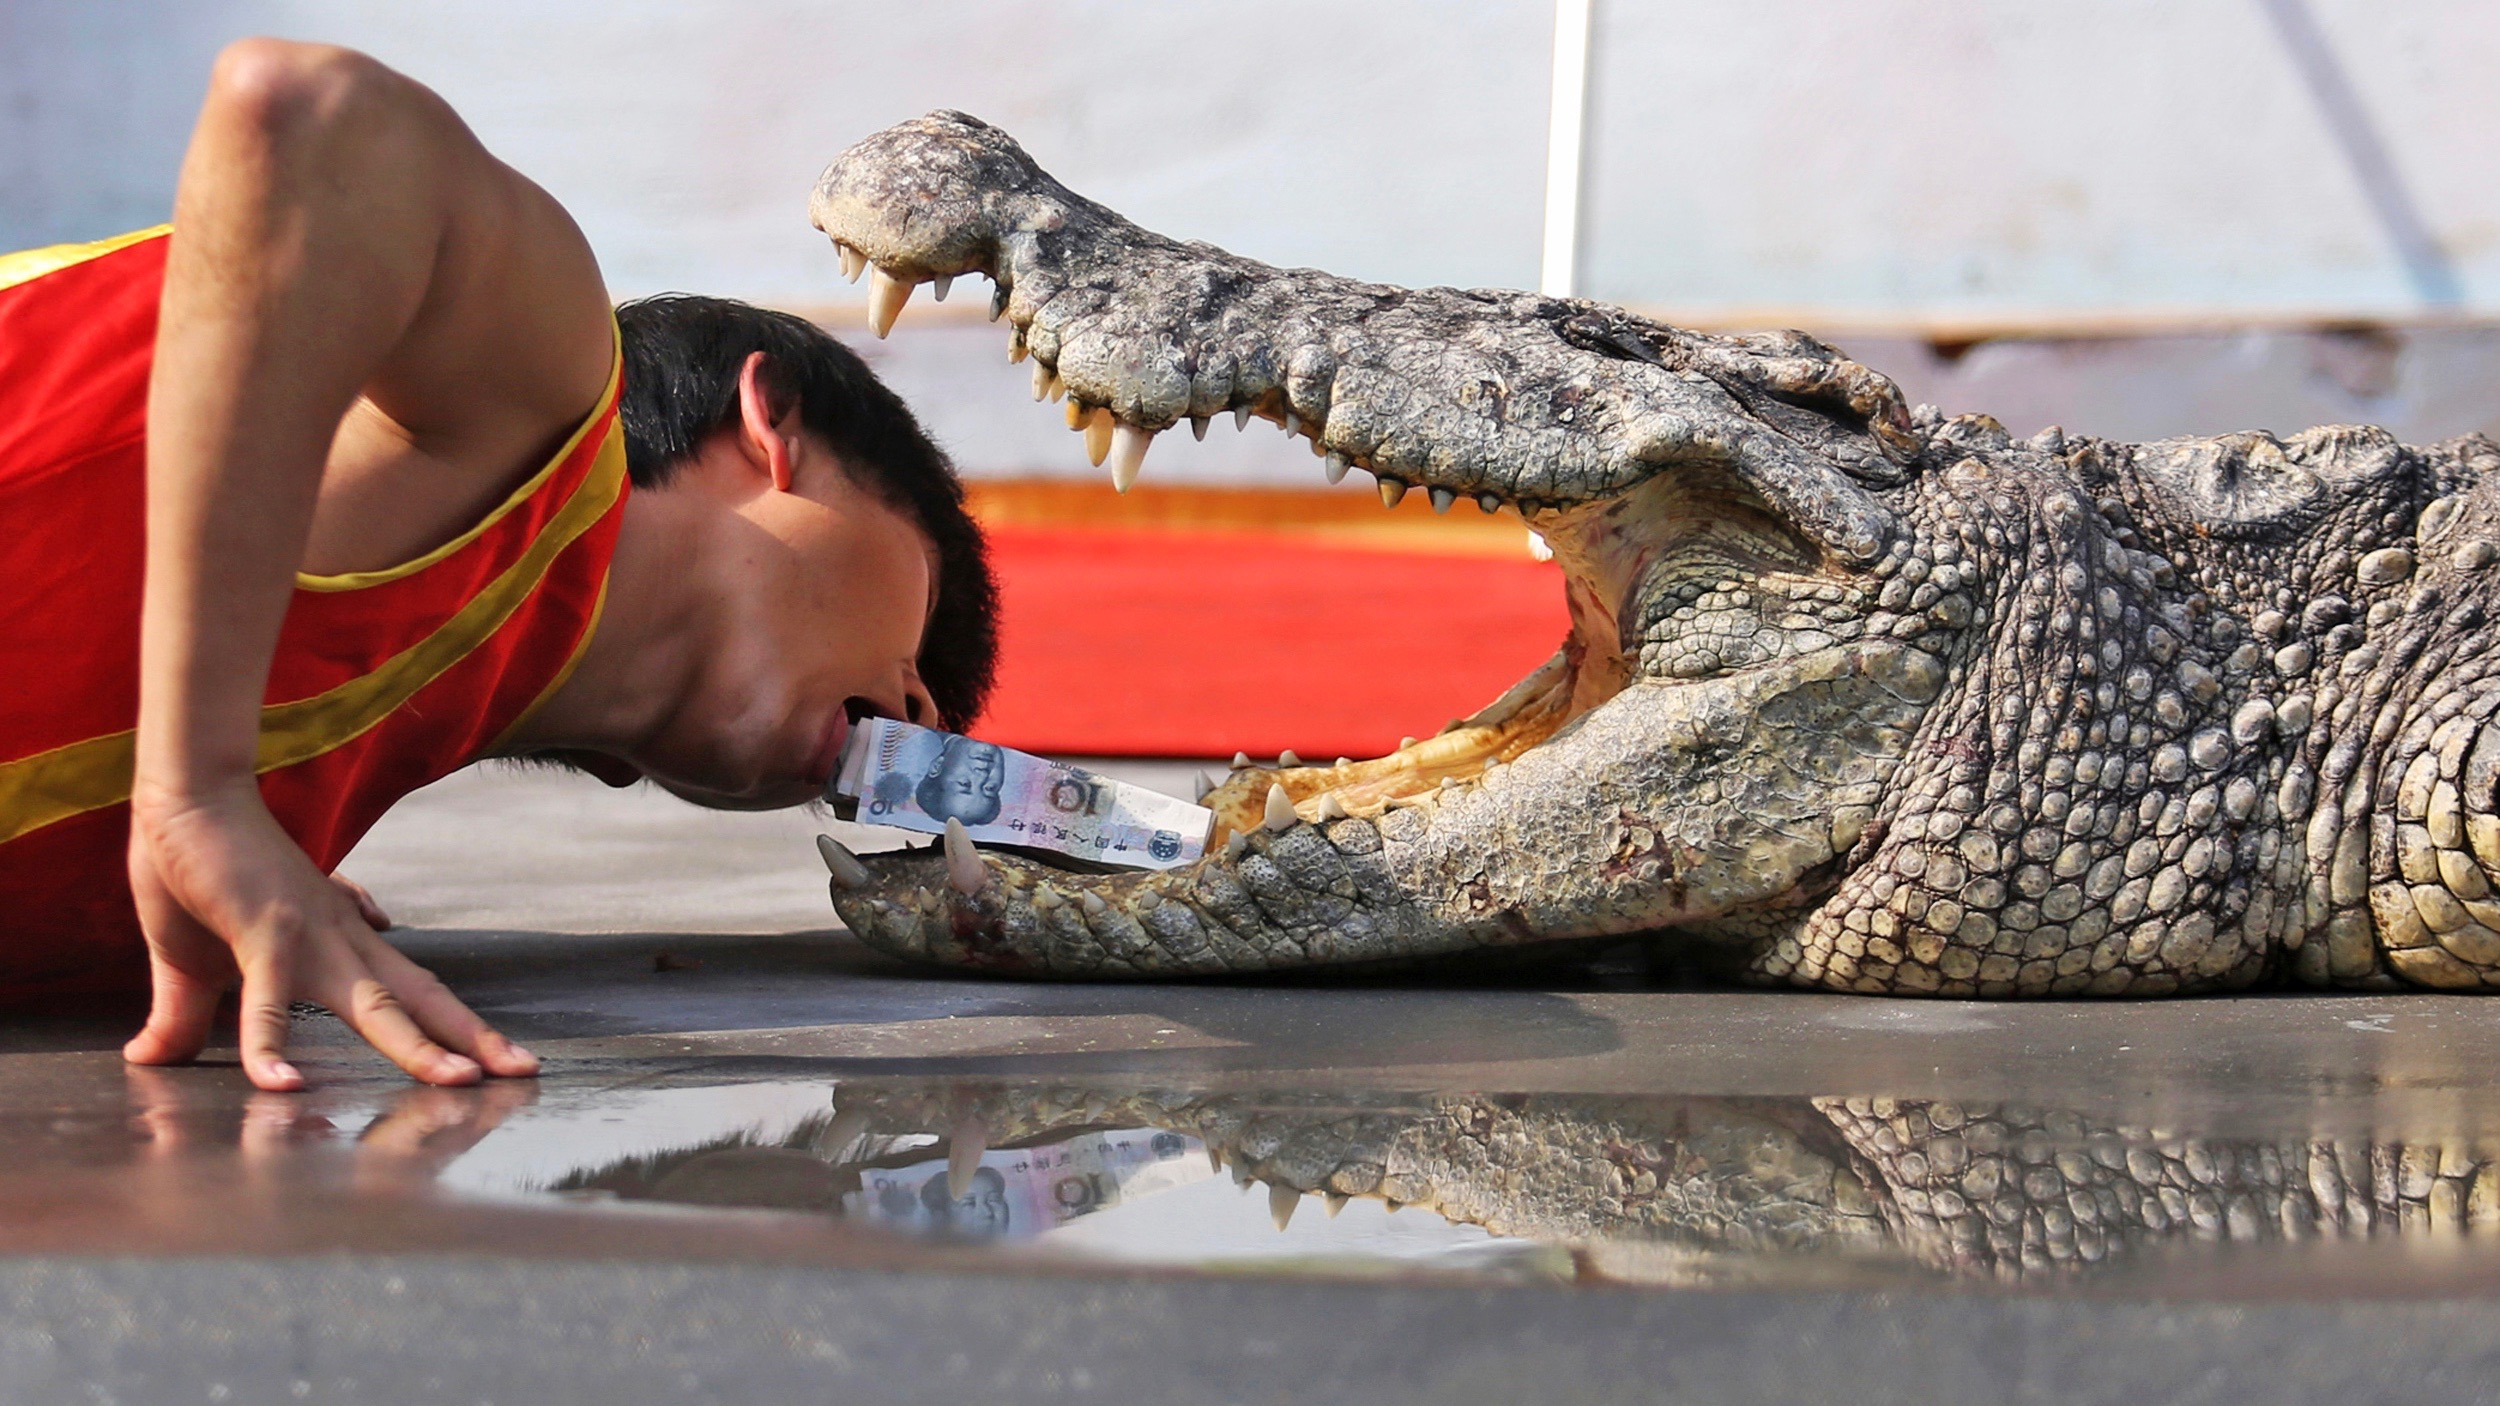 Chinese zoo demonstration—human head in croc mouth.